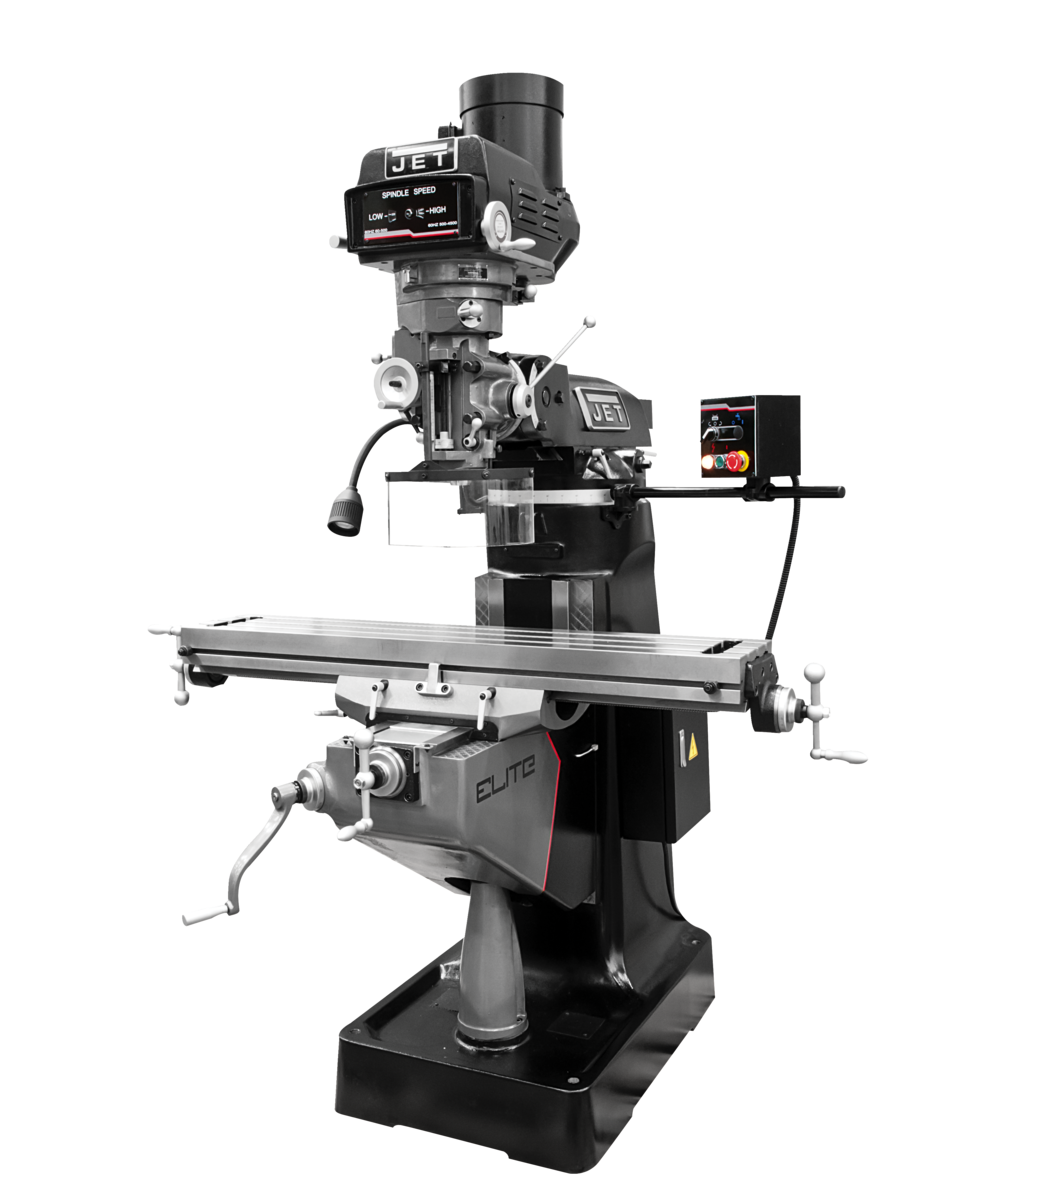 ETM-949 Mill with 3-Axis Newall DP700 (Quill) DRO